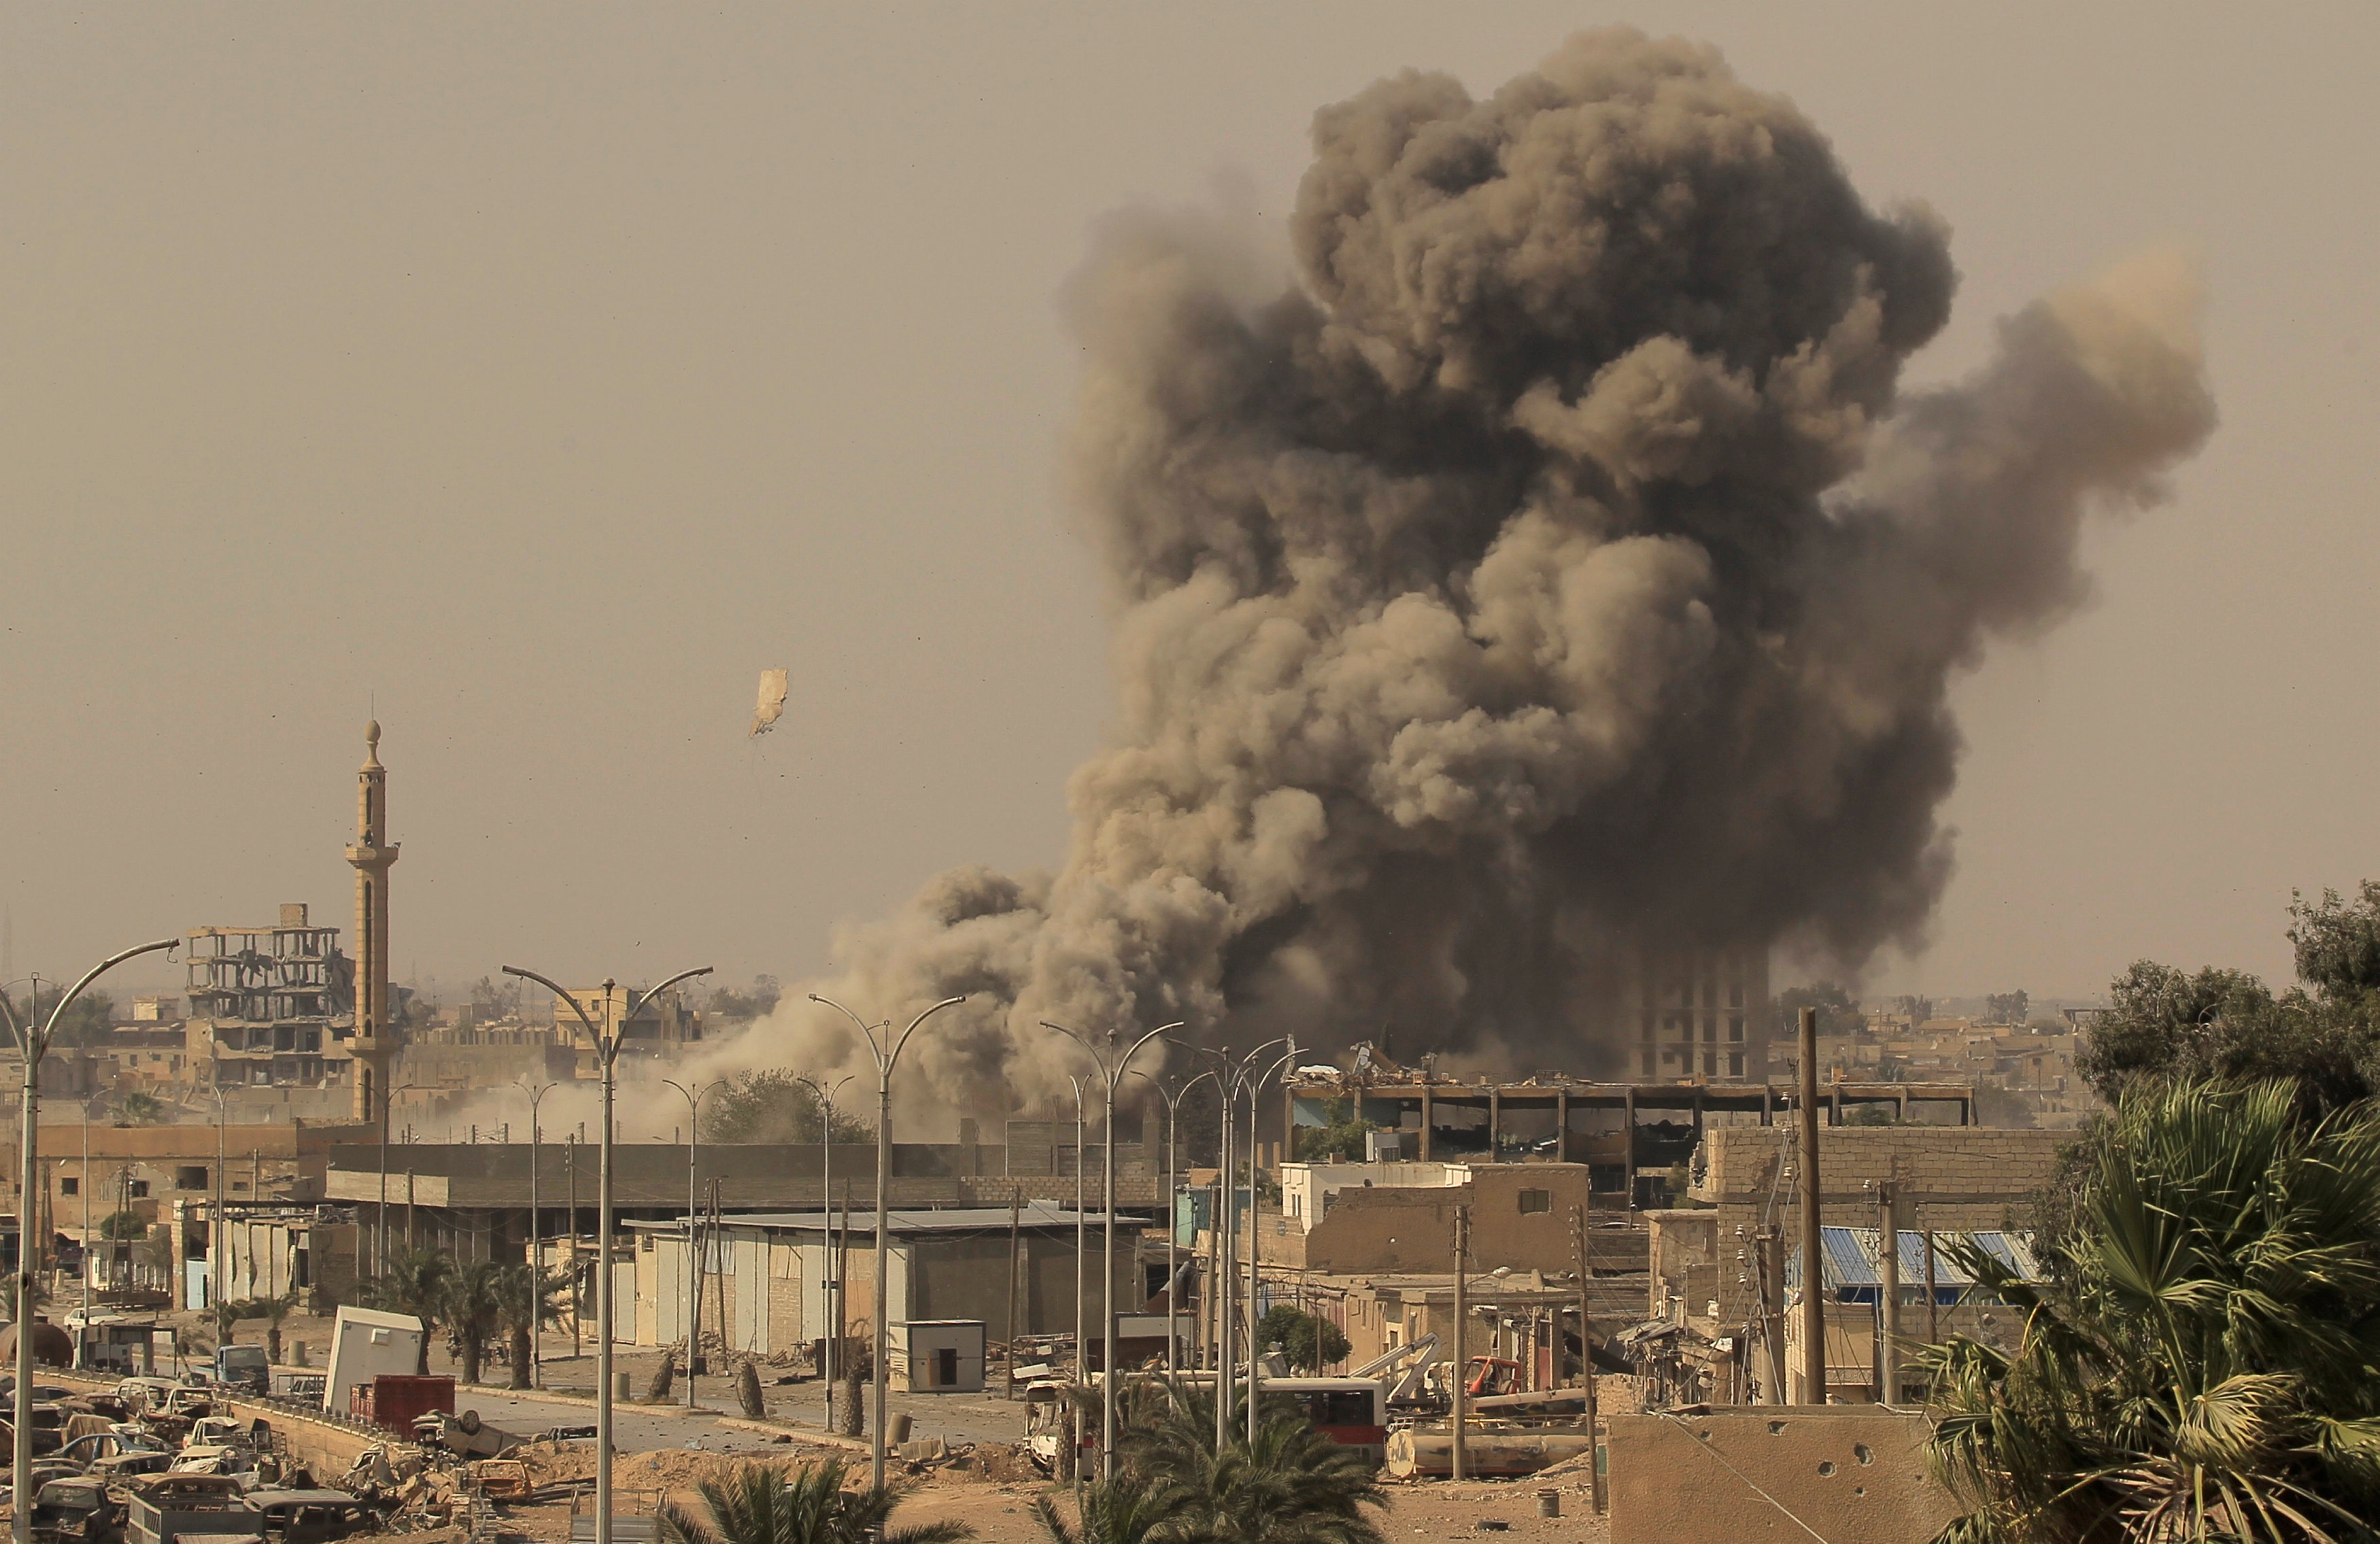 Rebels say they shoot down Syrian military jet, army confirms crash